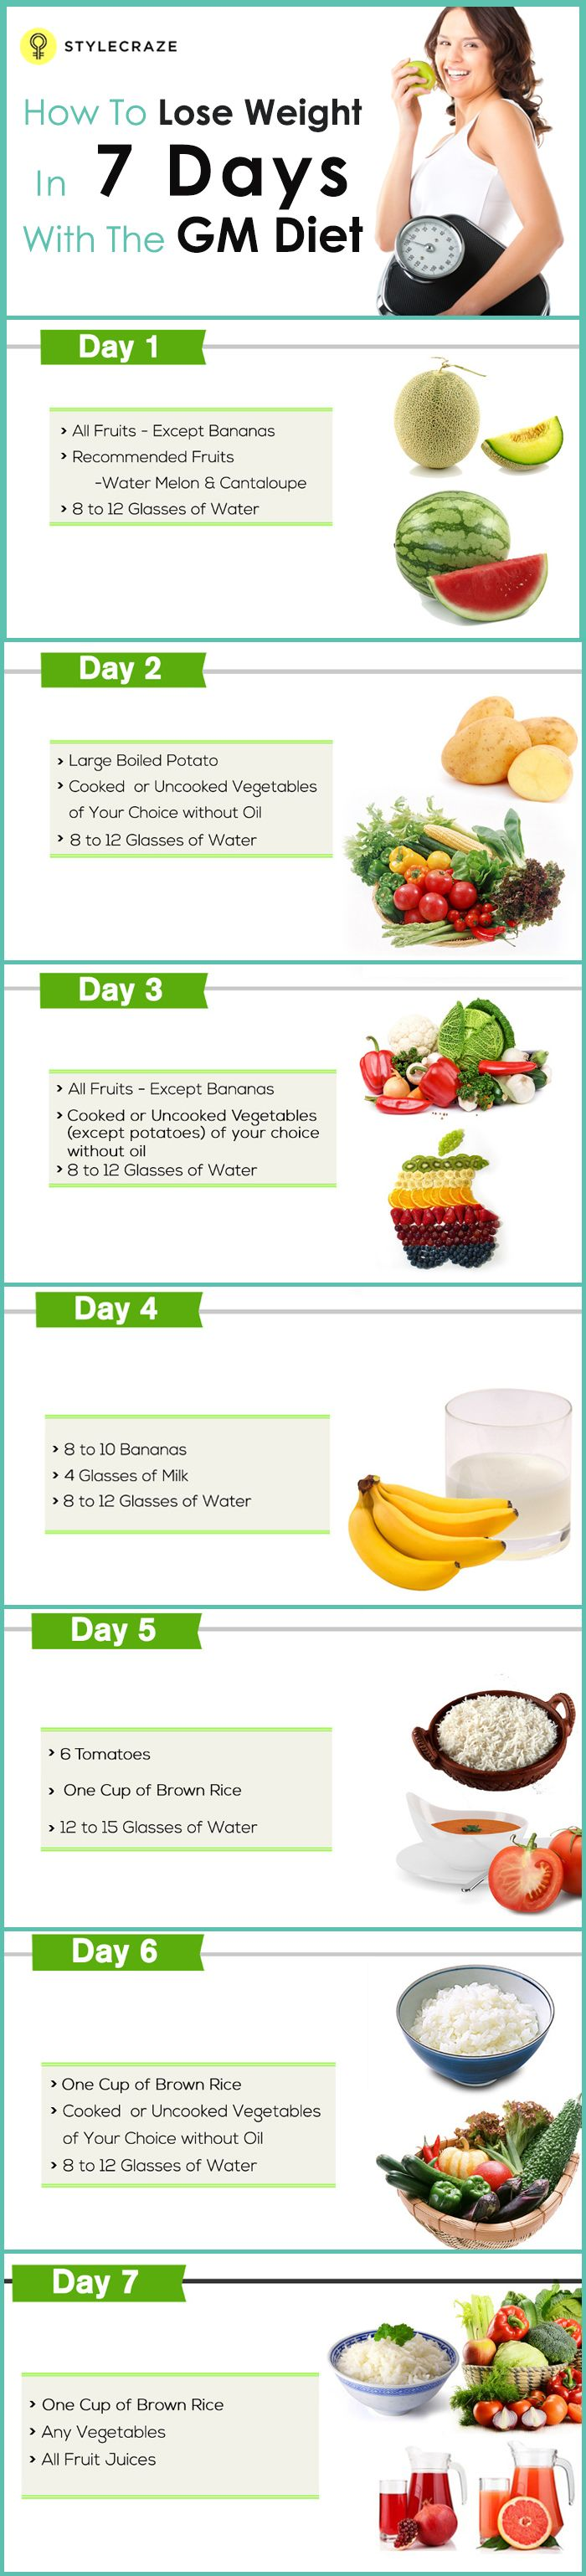 Best 25 Gm Diet Ideas On Pinterest Gm Diet Plans 3